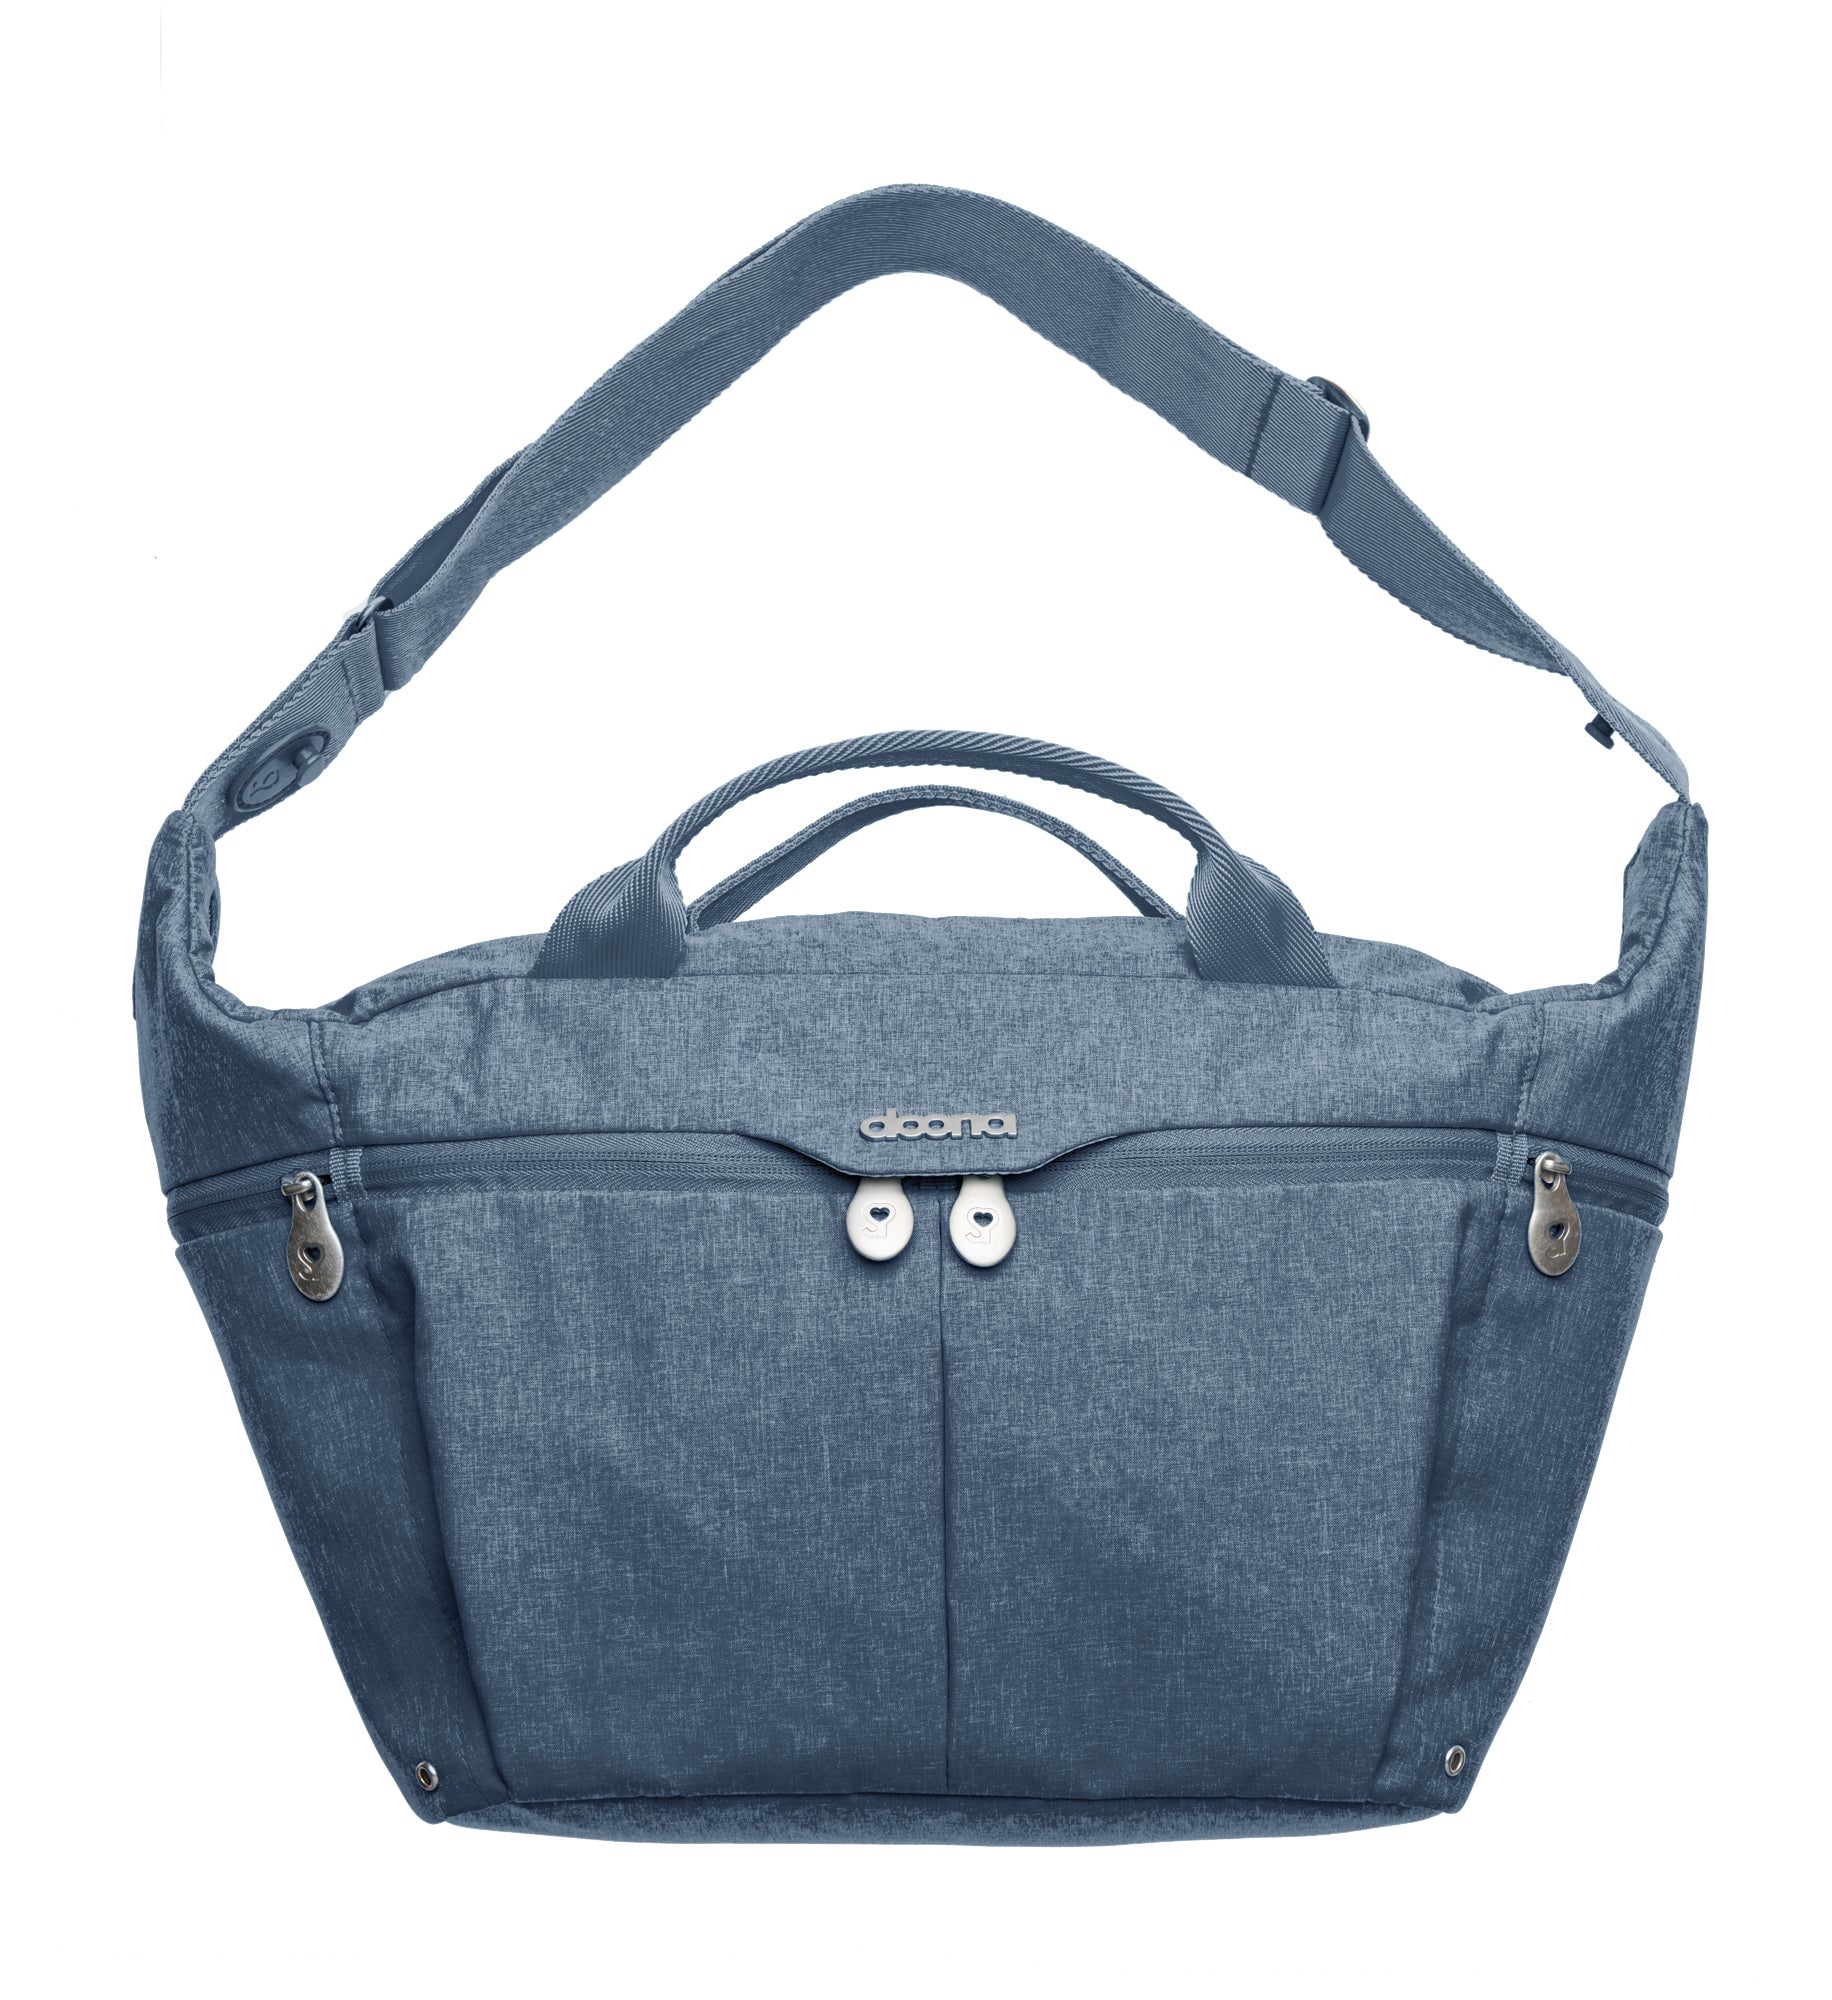 Doona All Day Bag - Marine